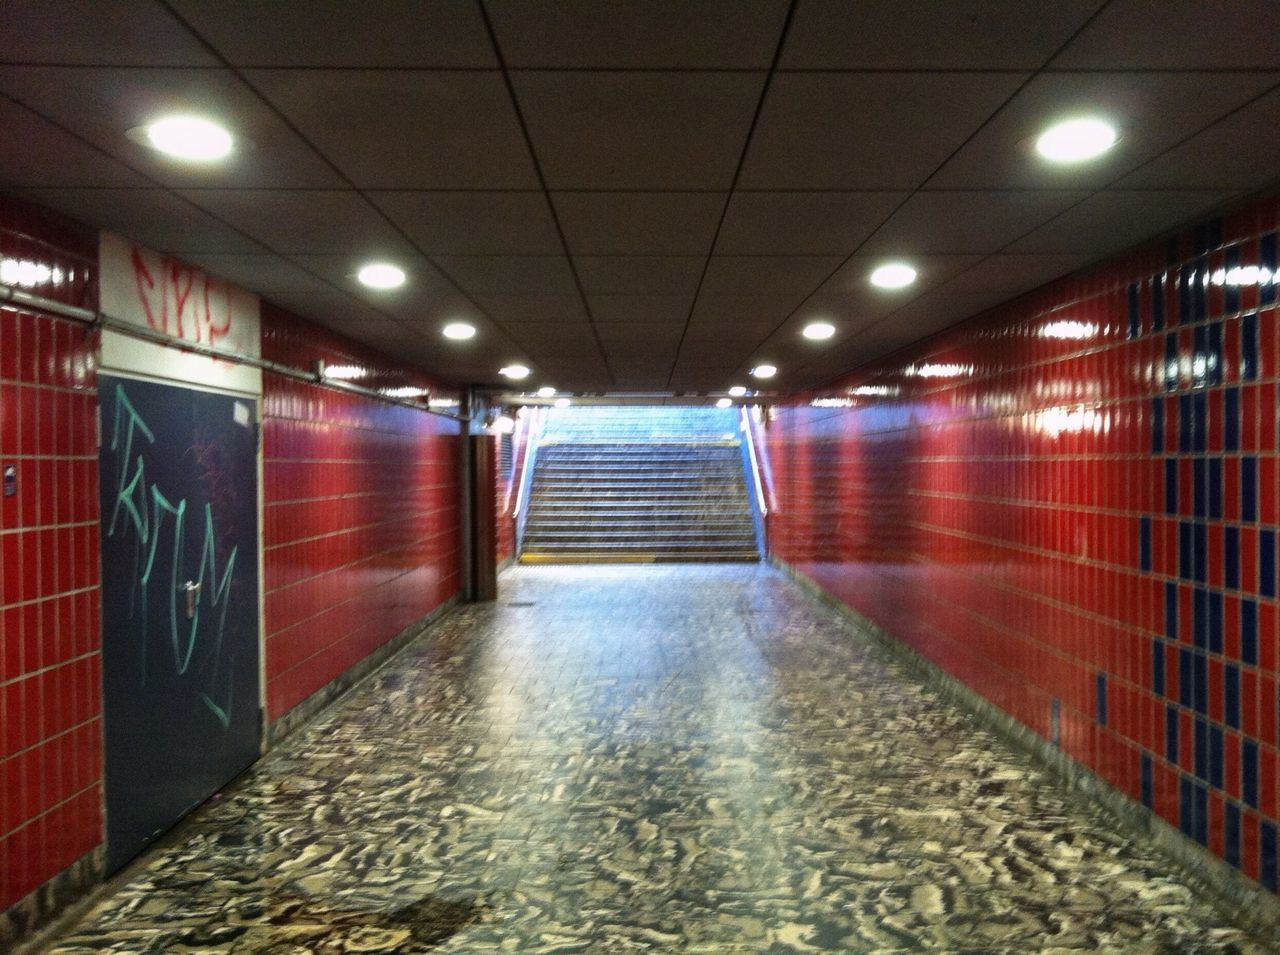 Hamburg Reeperbahn  Bahnhof Tunnel Lights No People Perspective Stairs EyeEm Best Shots Jopesfotos - Perspective